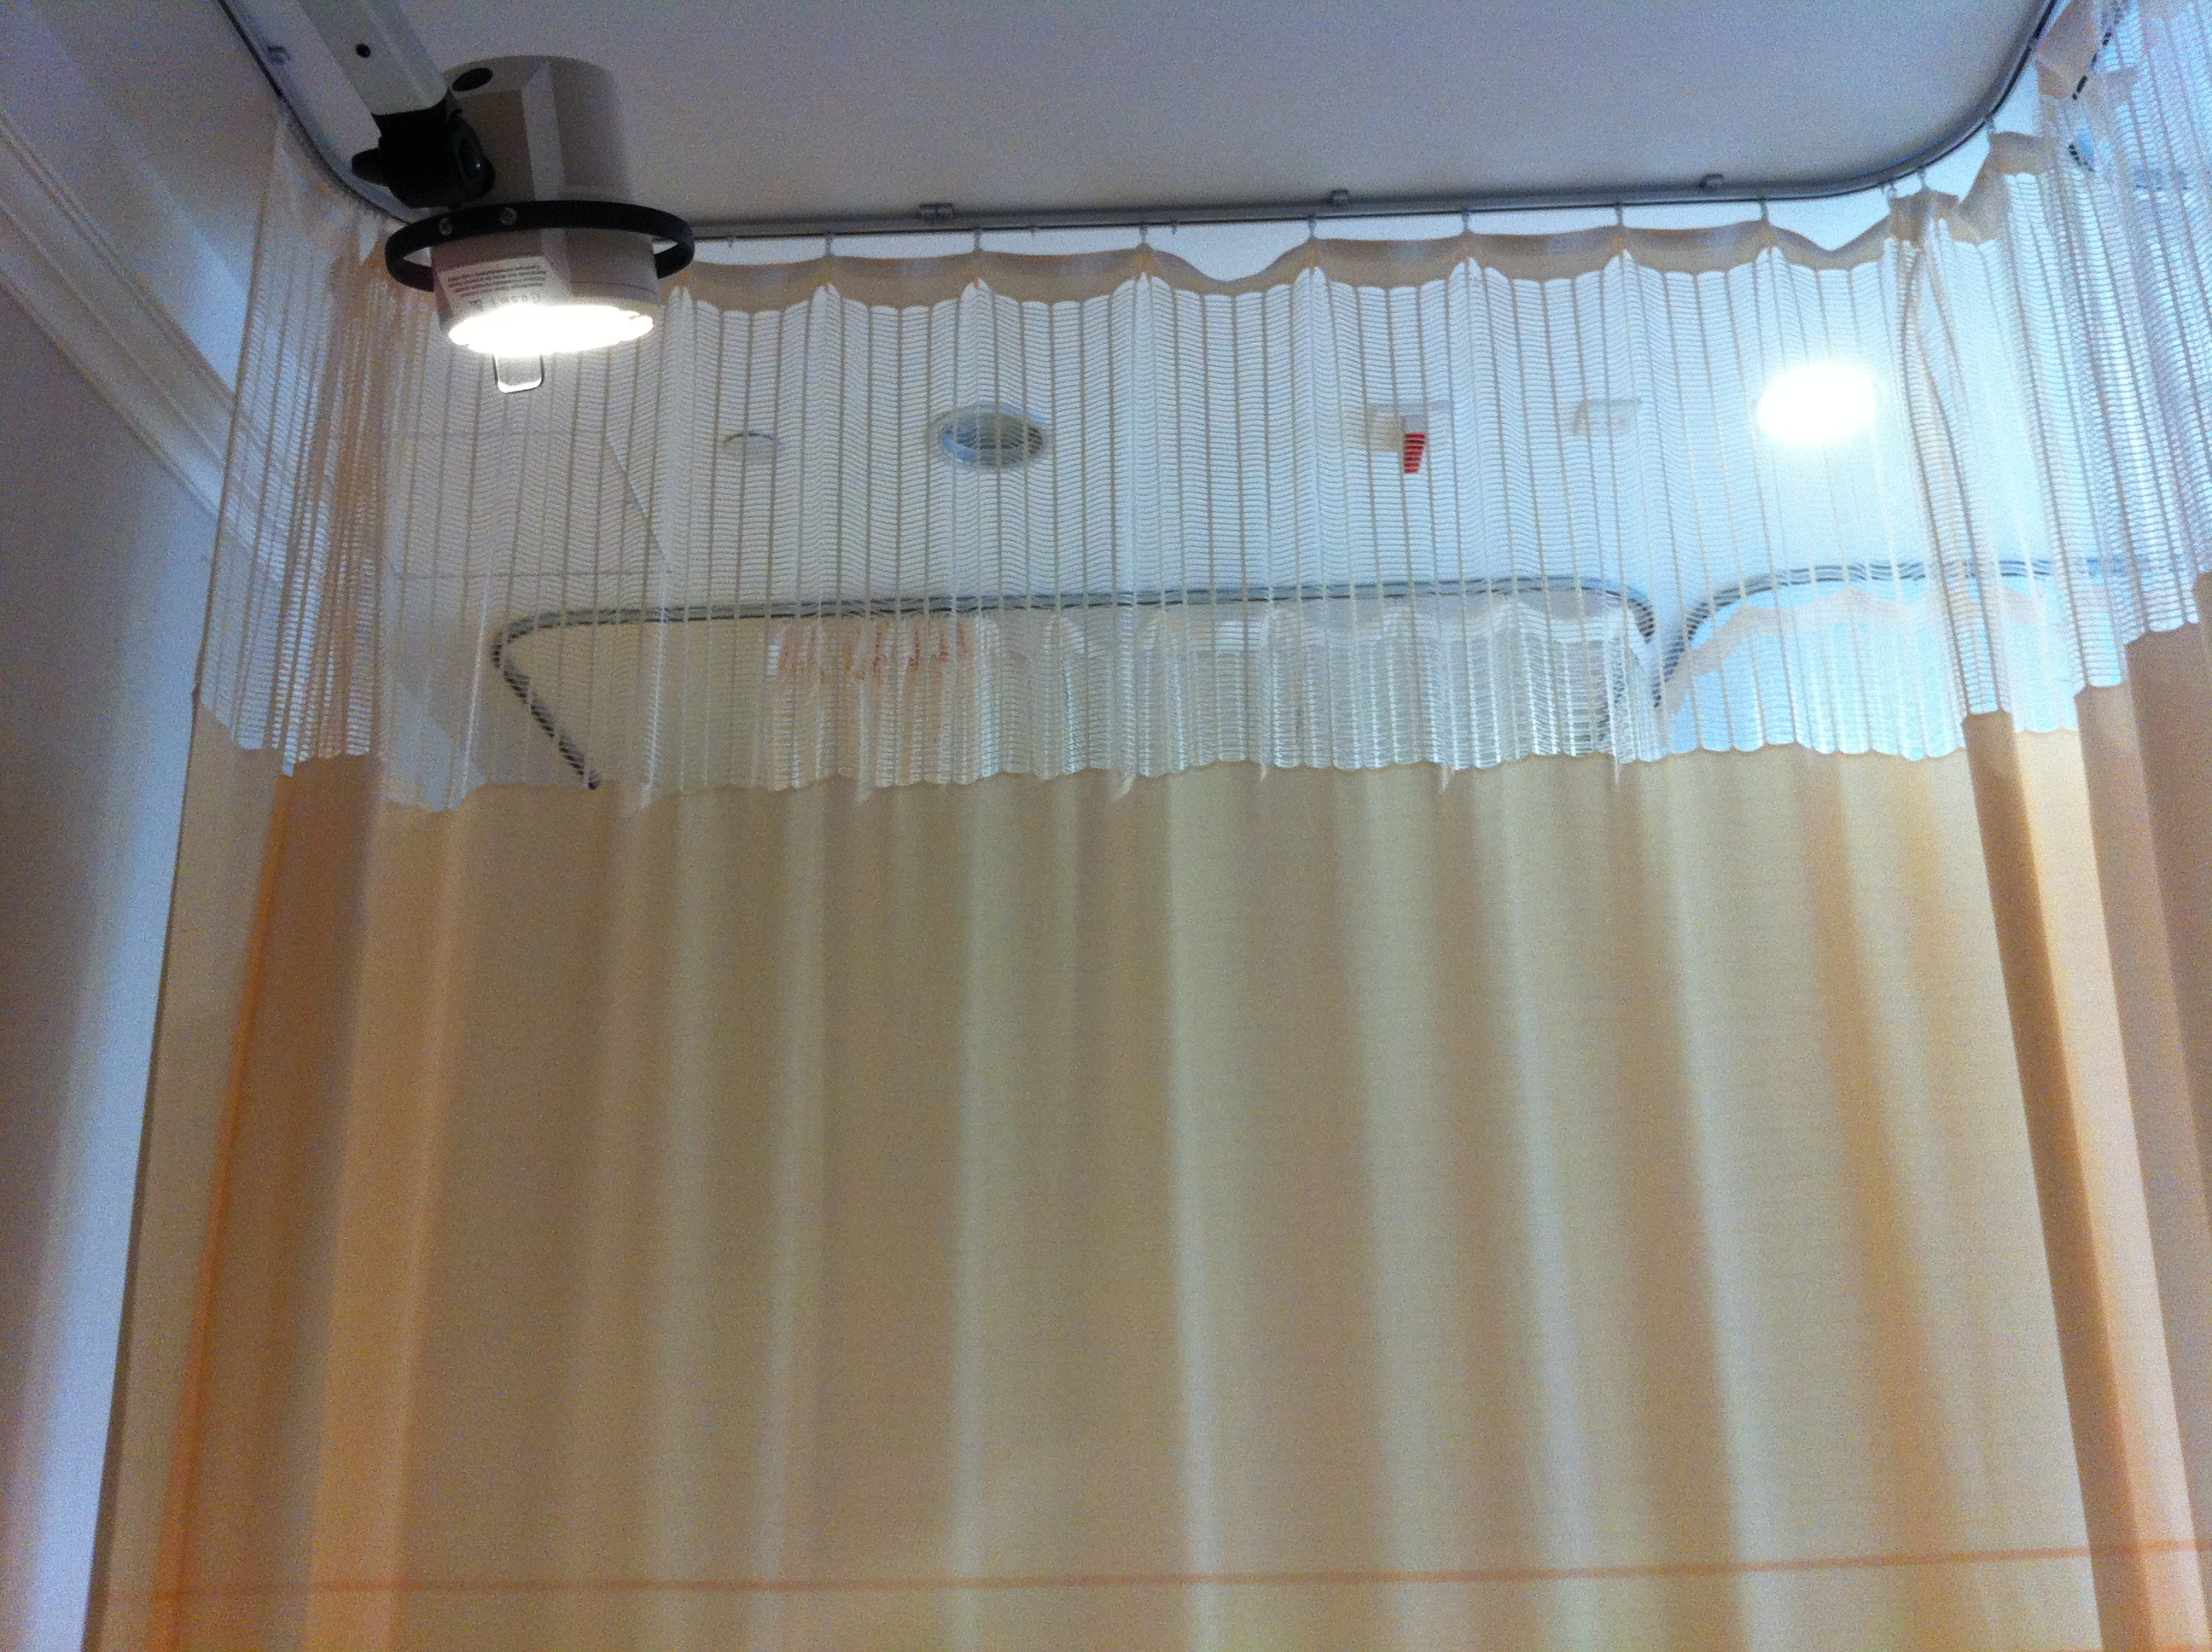 system hospital image greenite rail design permalink mounted track l home kahiz curtain ceiling curtains